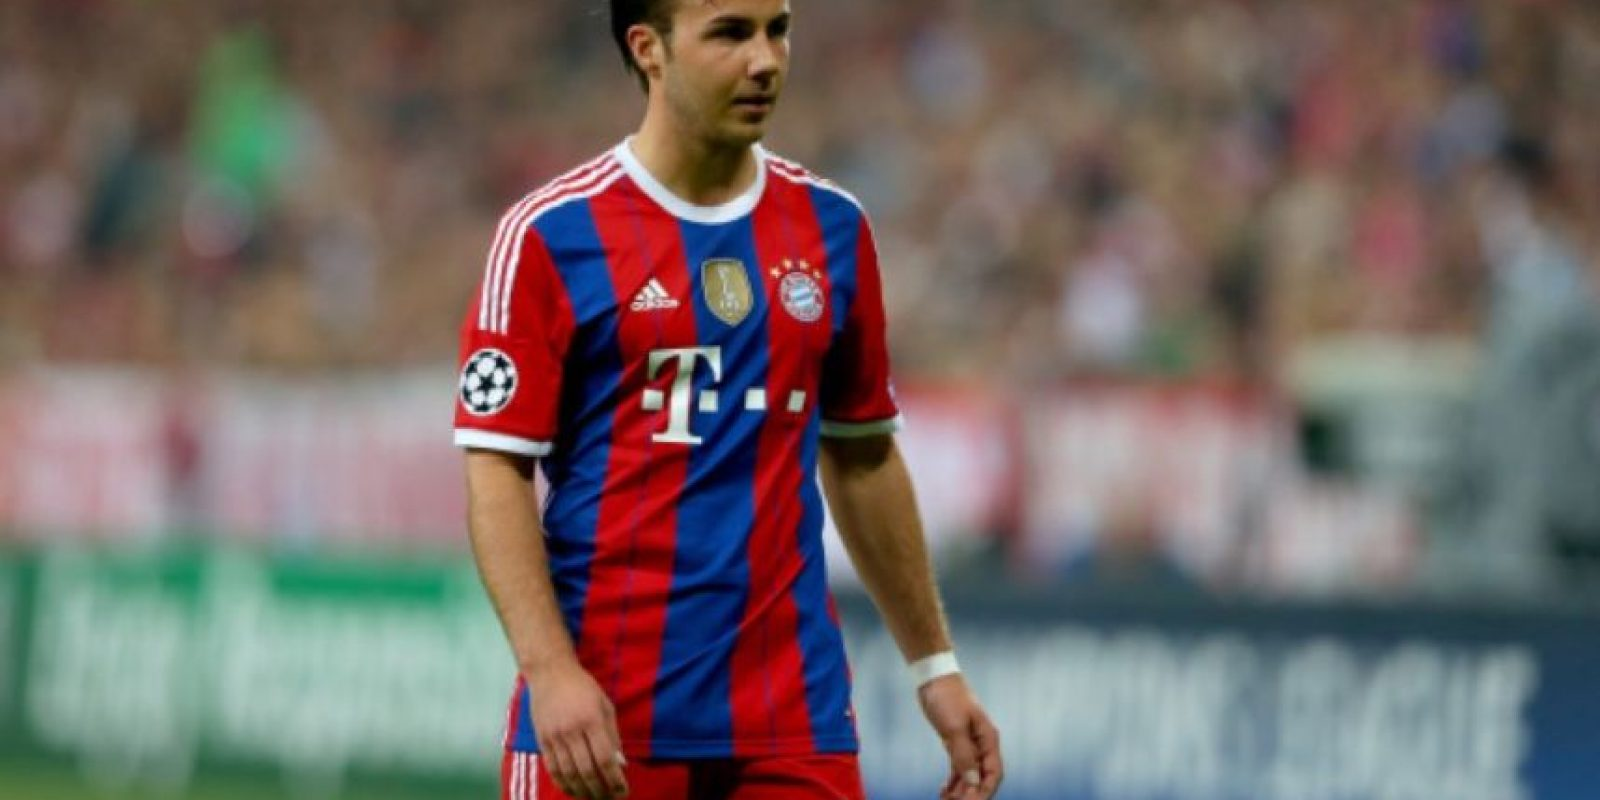 Mario Götze (Alemania) en la vida real. Foto: Getty Images